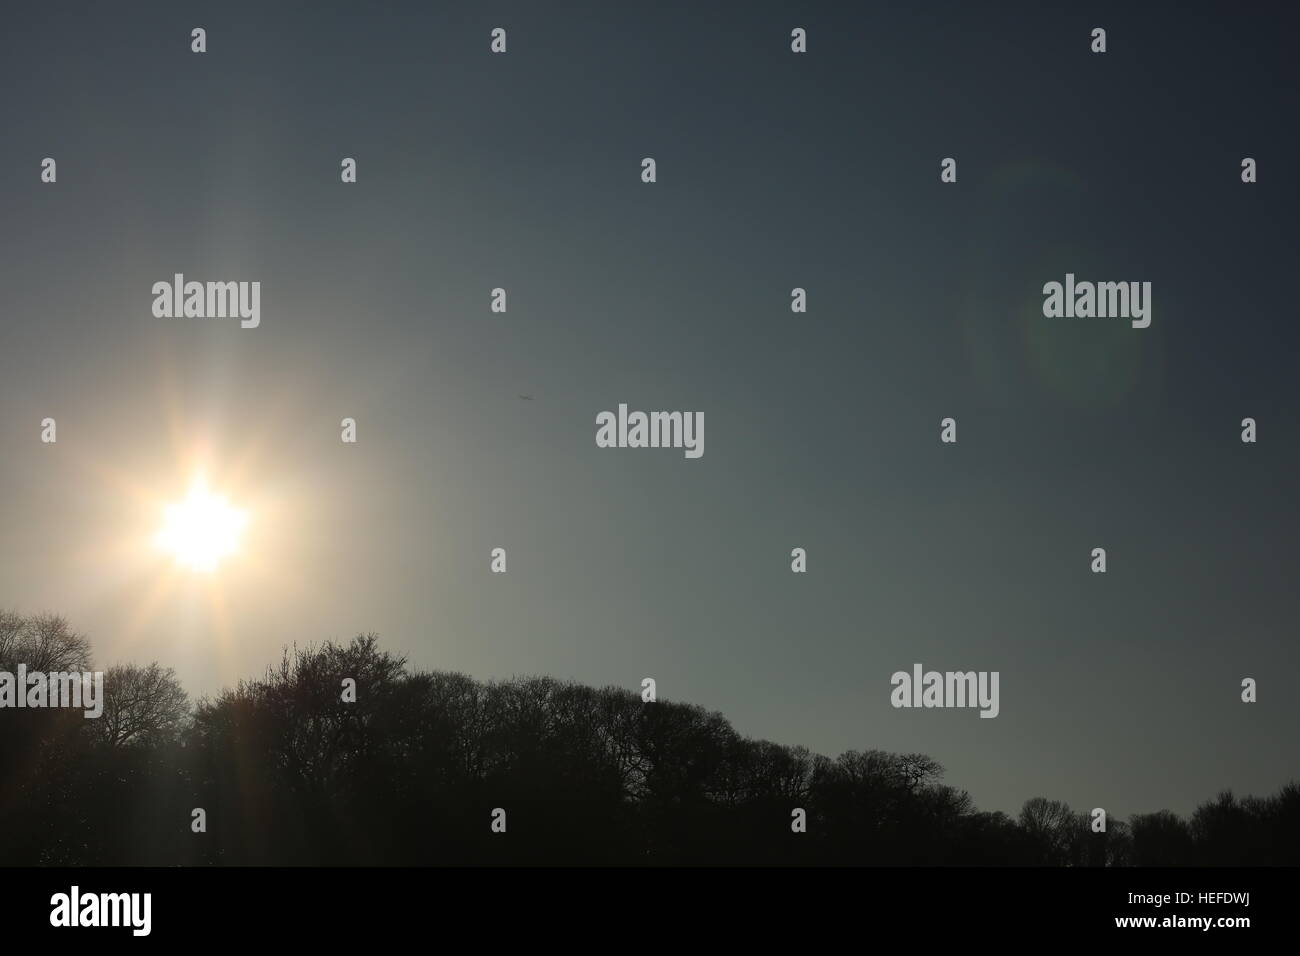 Image of sun sitting on top of trees, creating negative space. - Stock Image